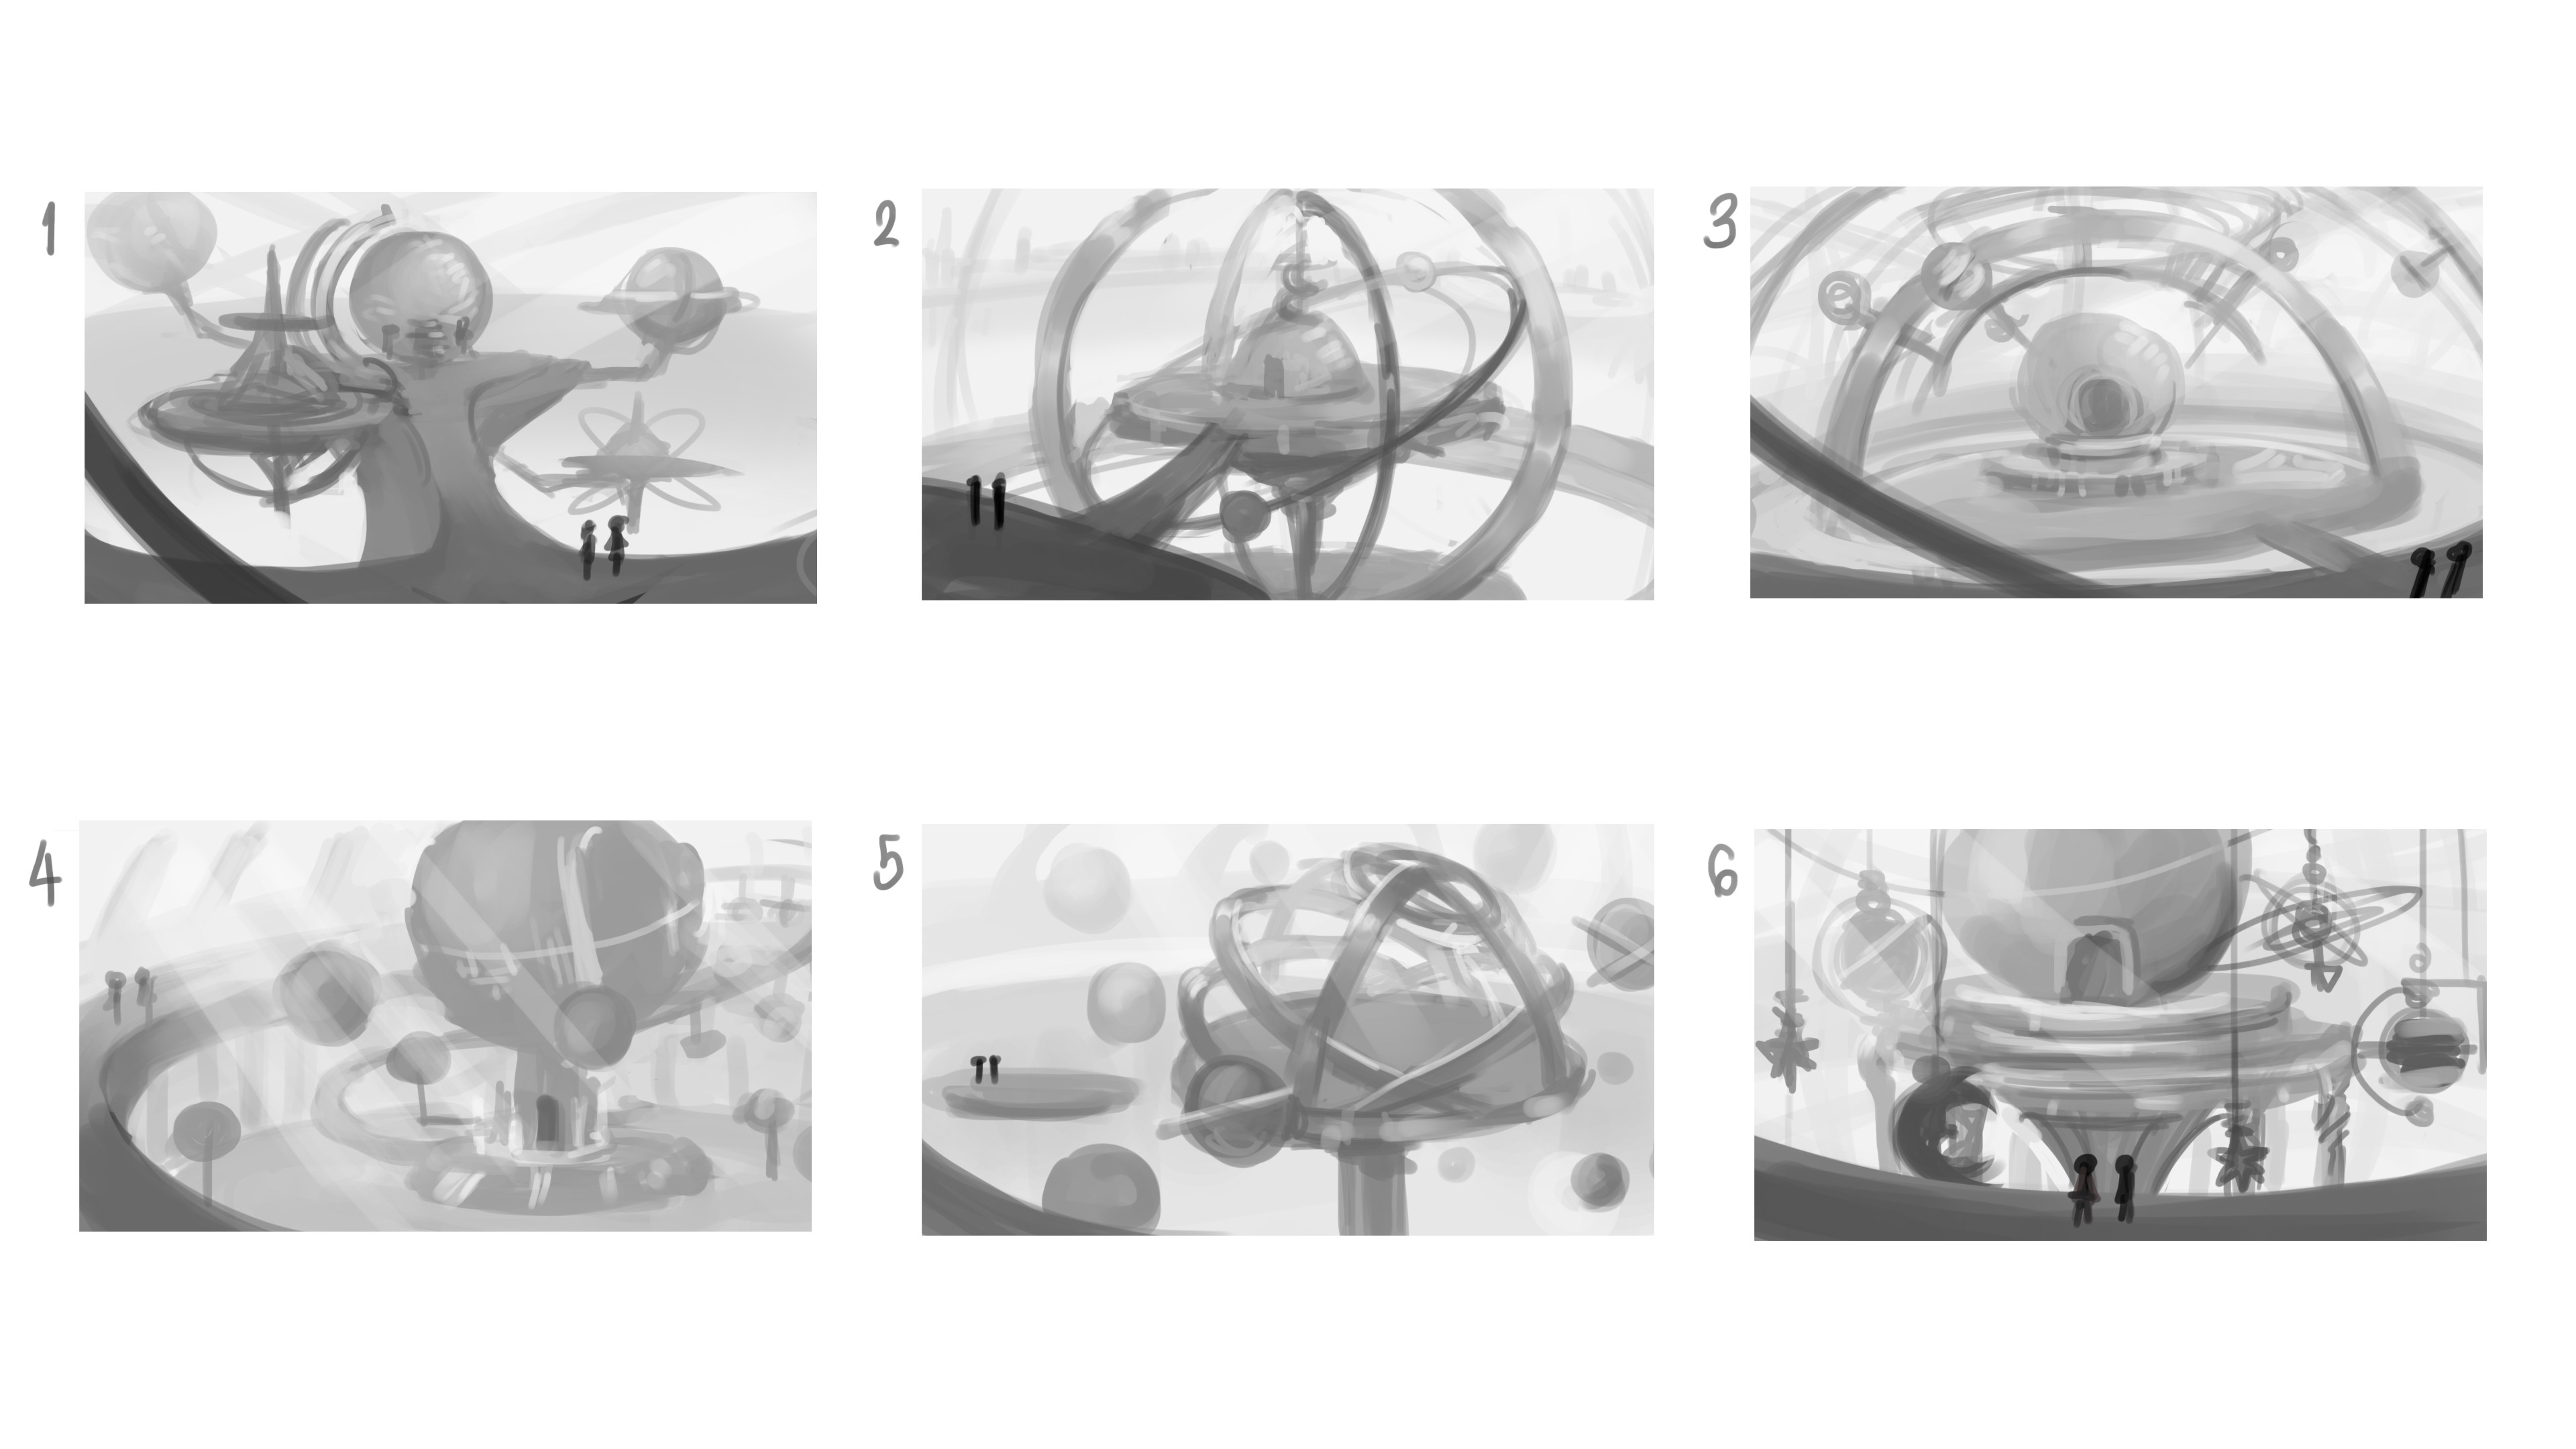 Thumbnail exploration for Orrery area